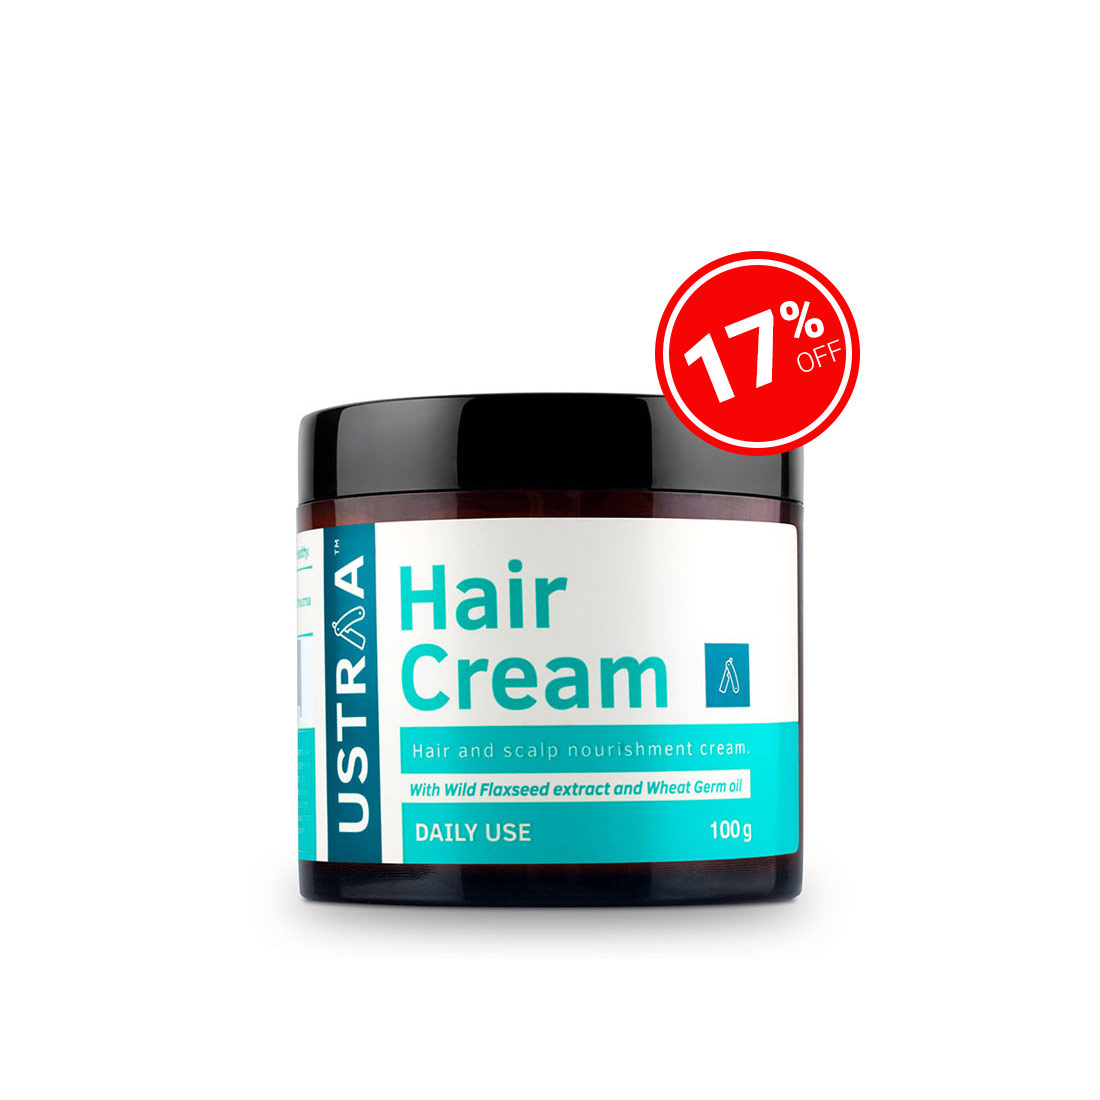 Hair Cream for men - Daily Use - 100g